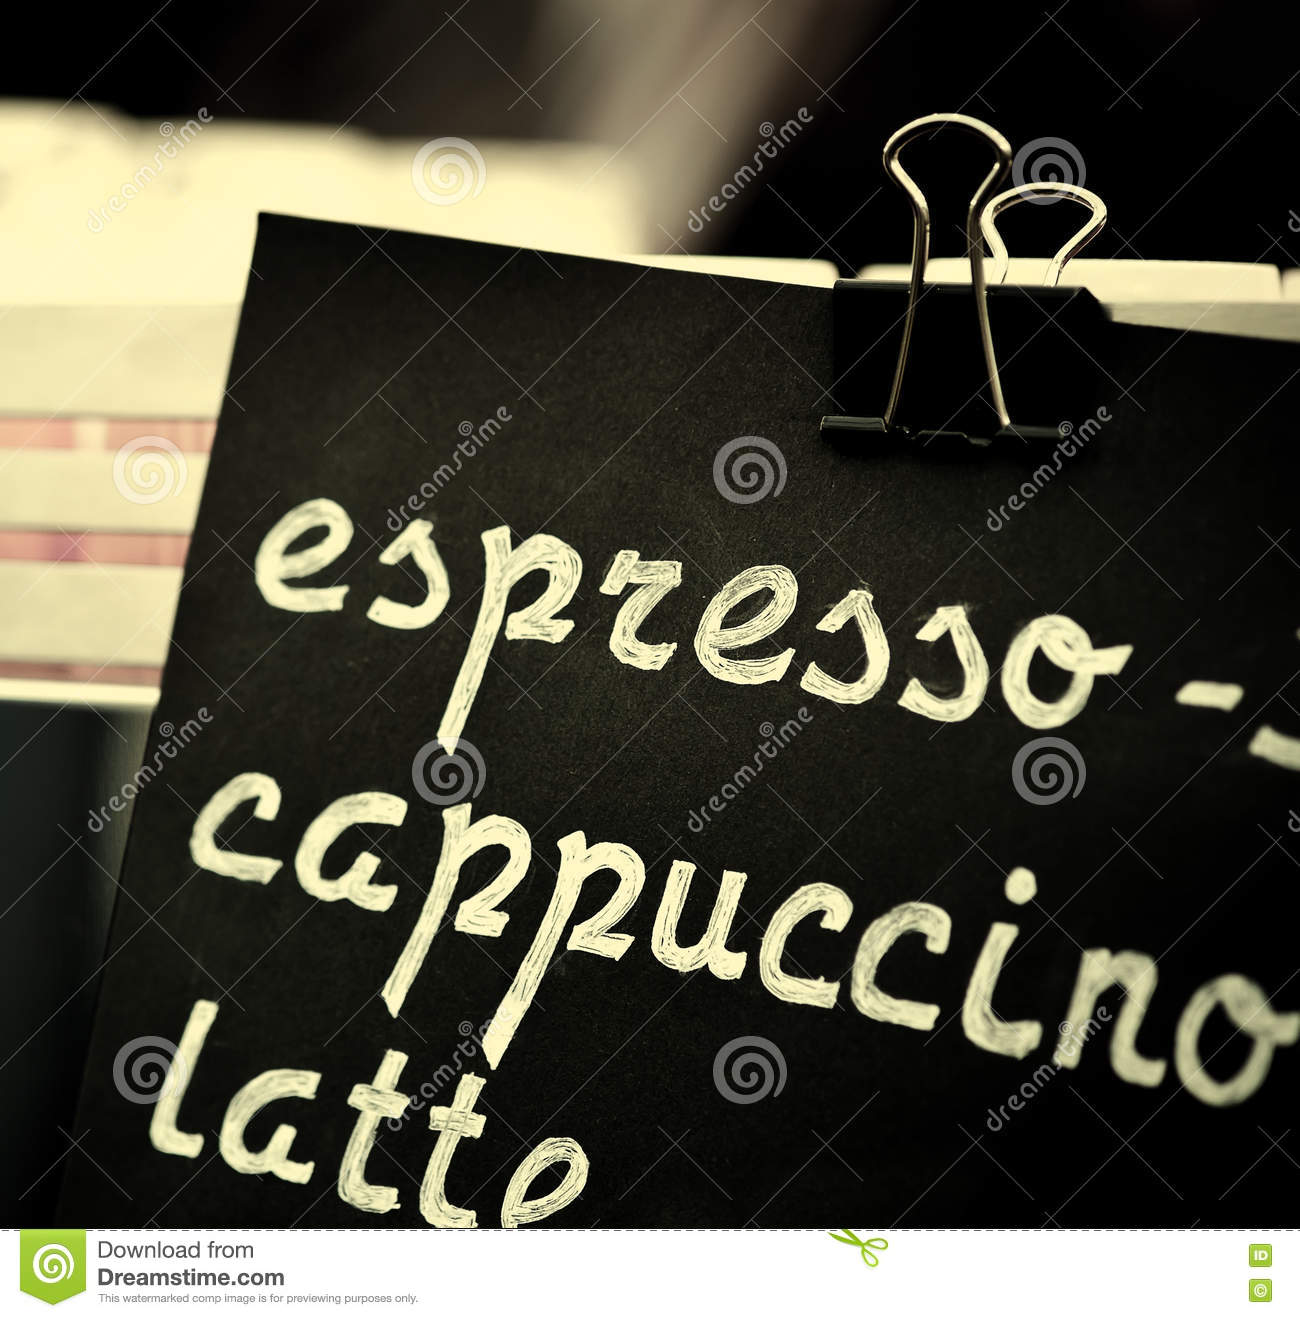 Espresso, Cappuccino, Latte Sign. Hand Drawing Price Text